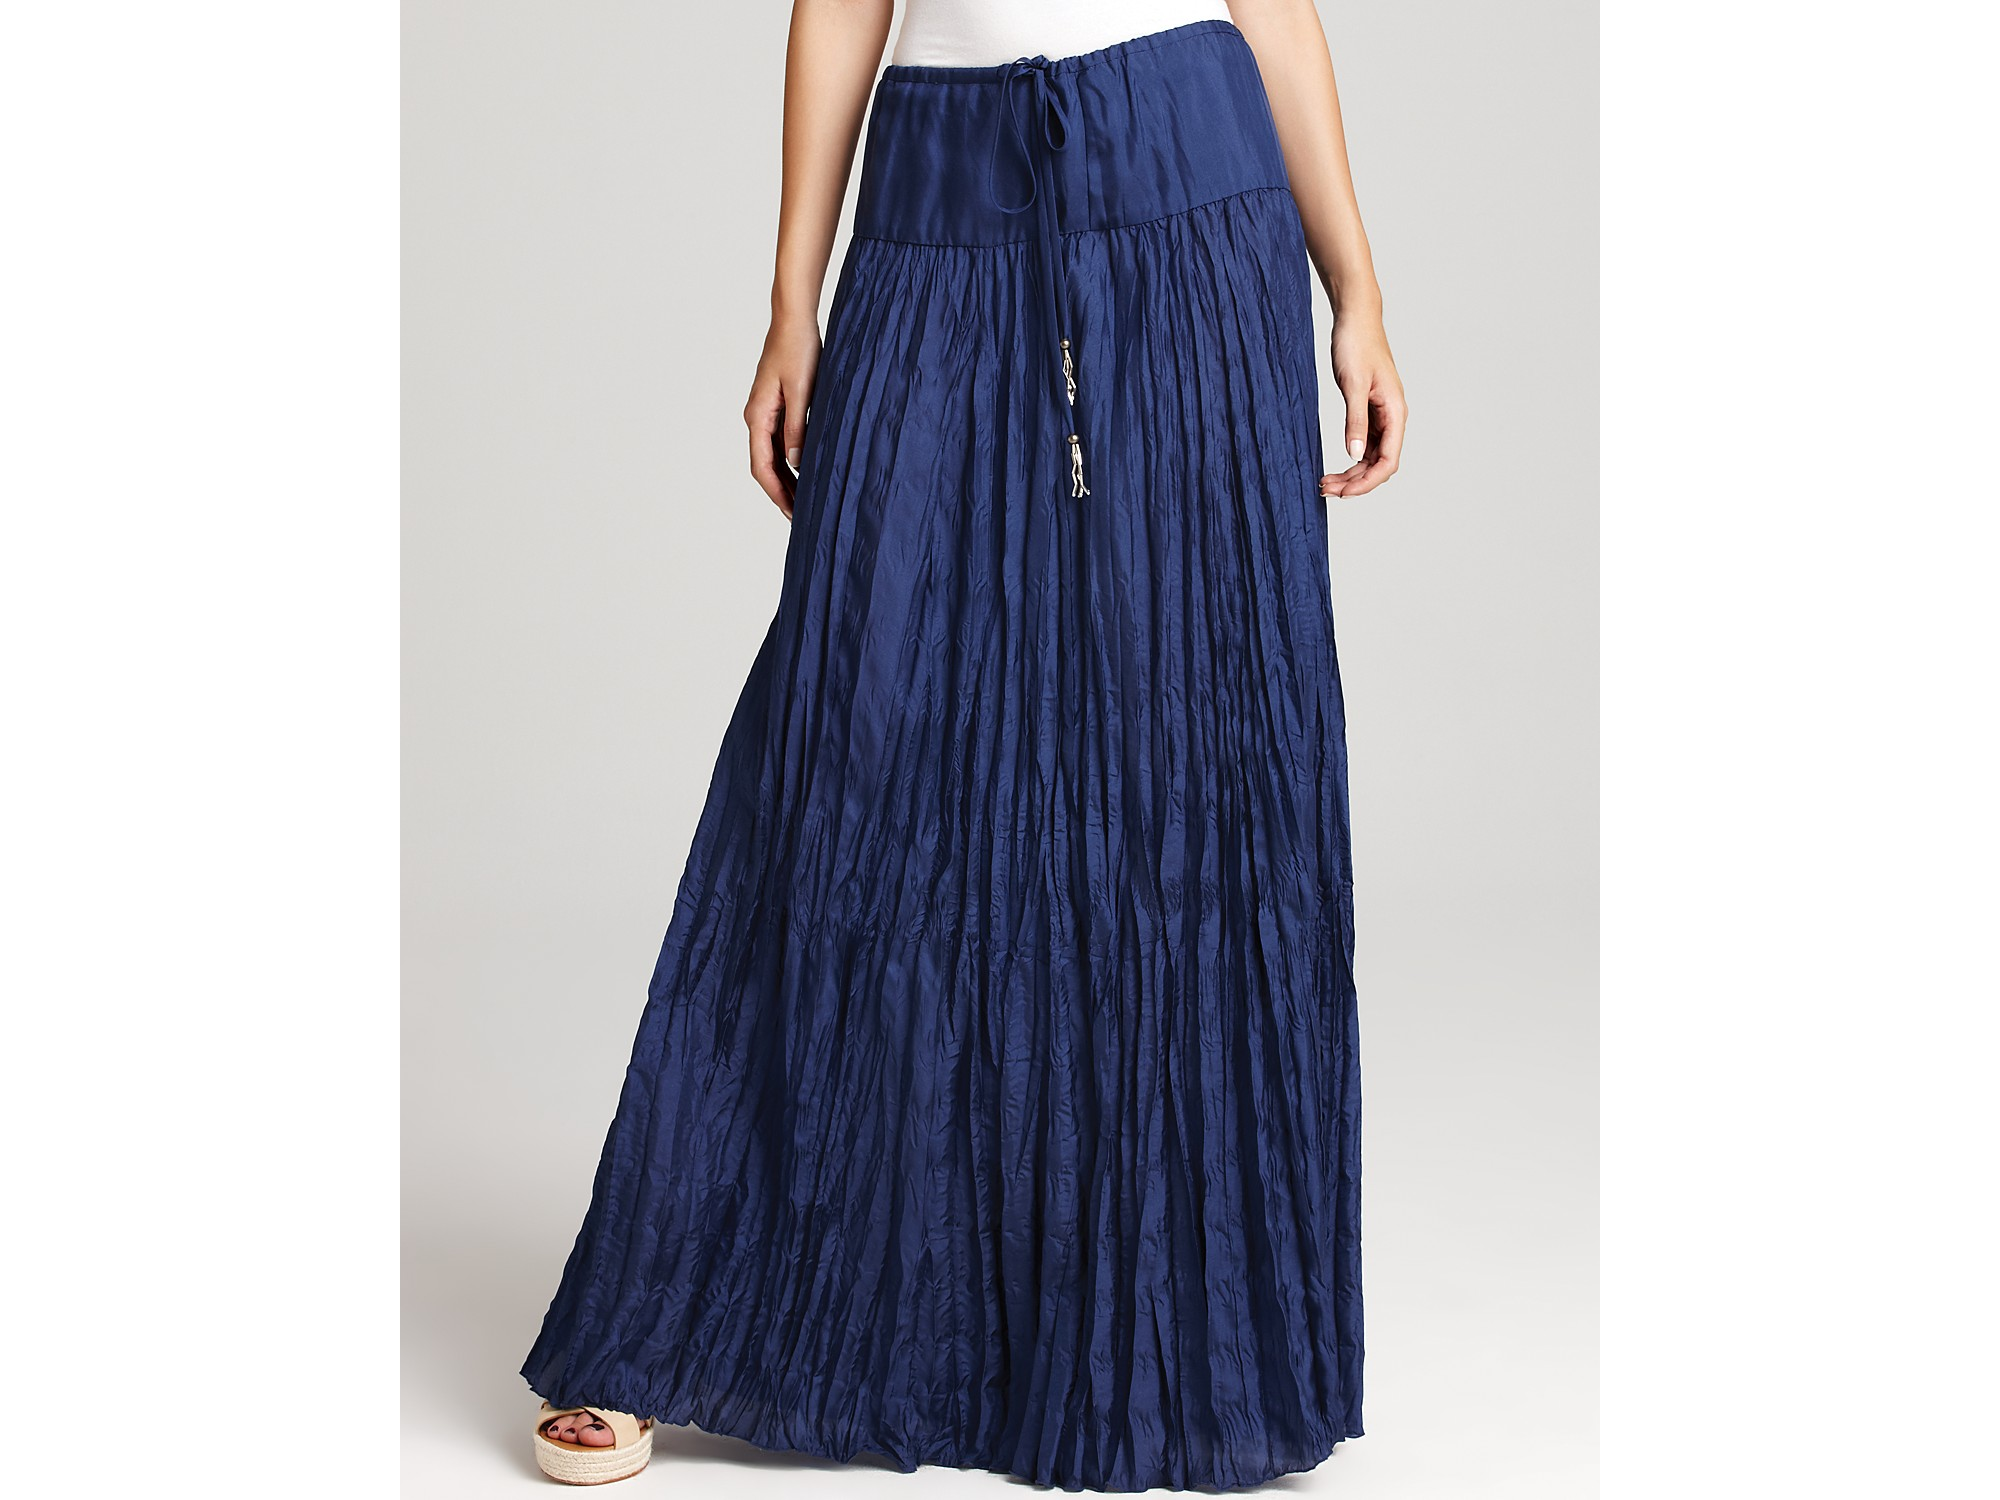 plenty by tracy reese quotation skirt crinkled circle maxi